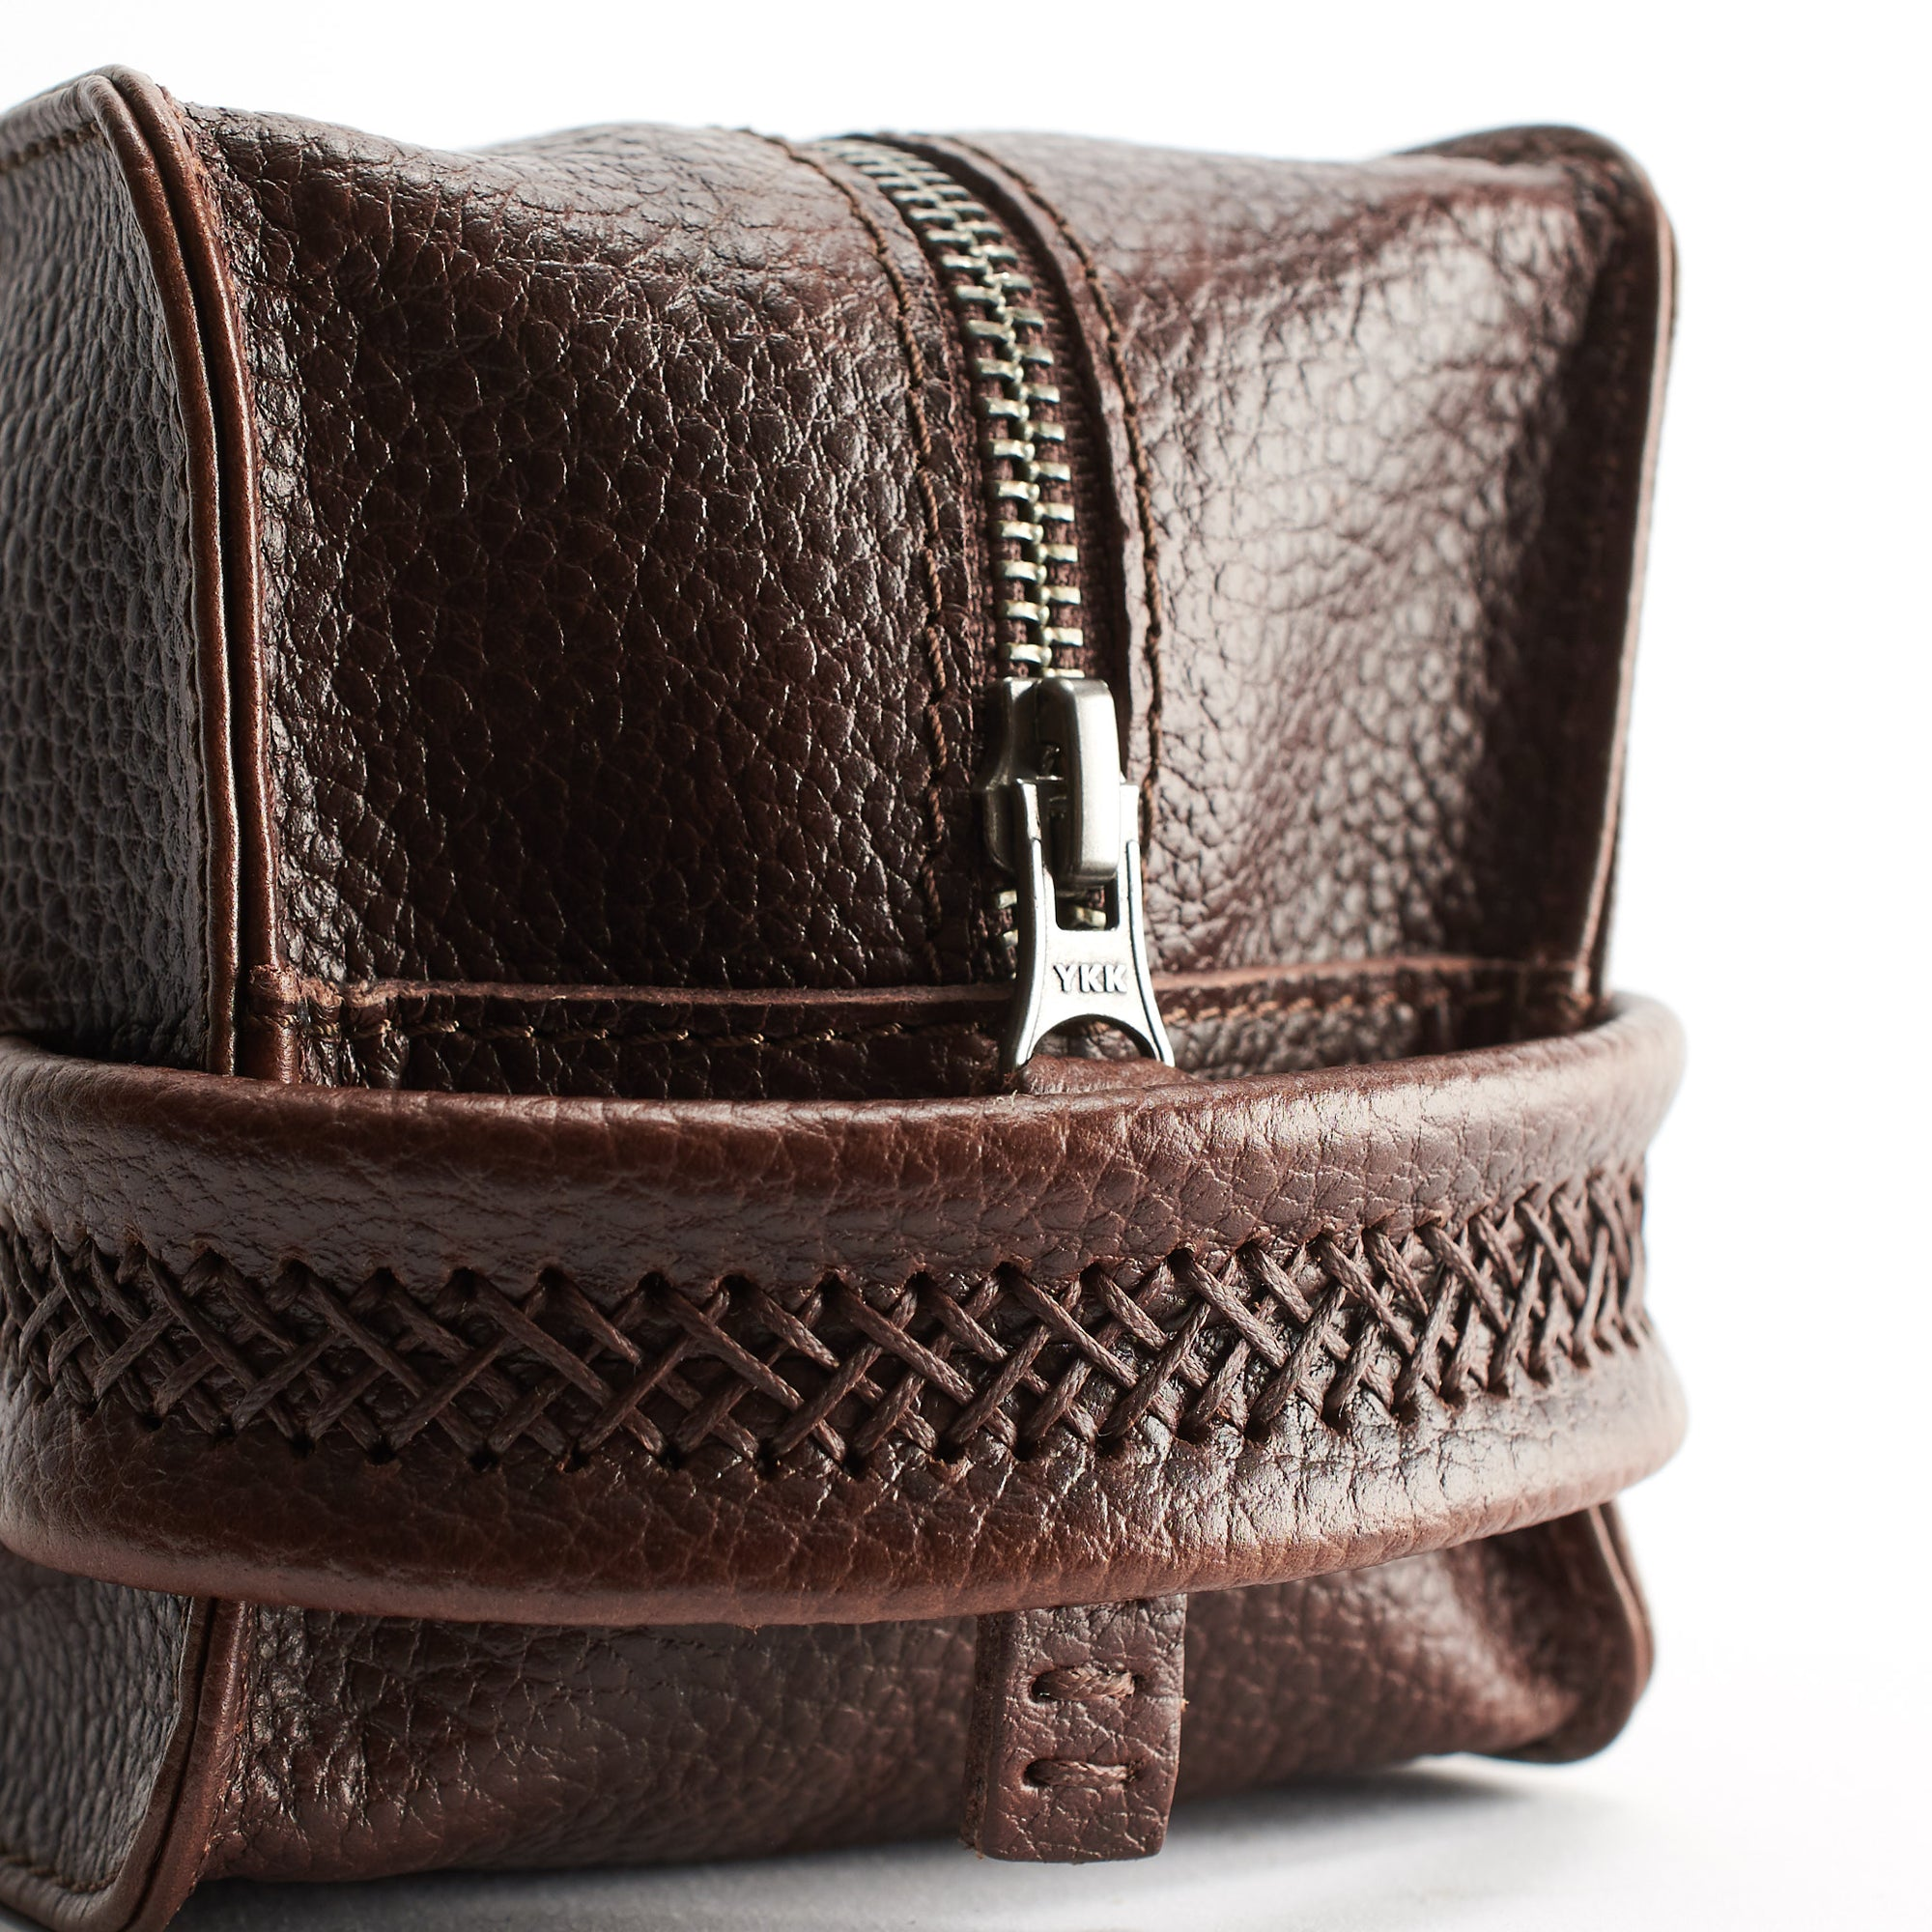 Dark Brown leather toiletry, shaving bag with hand stitched handle. Groomsmen gifts